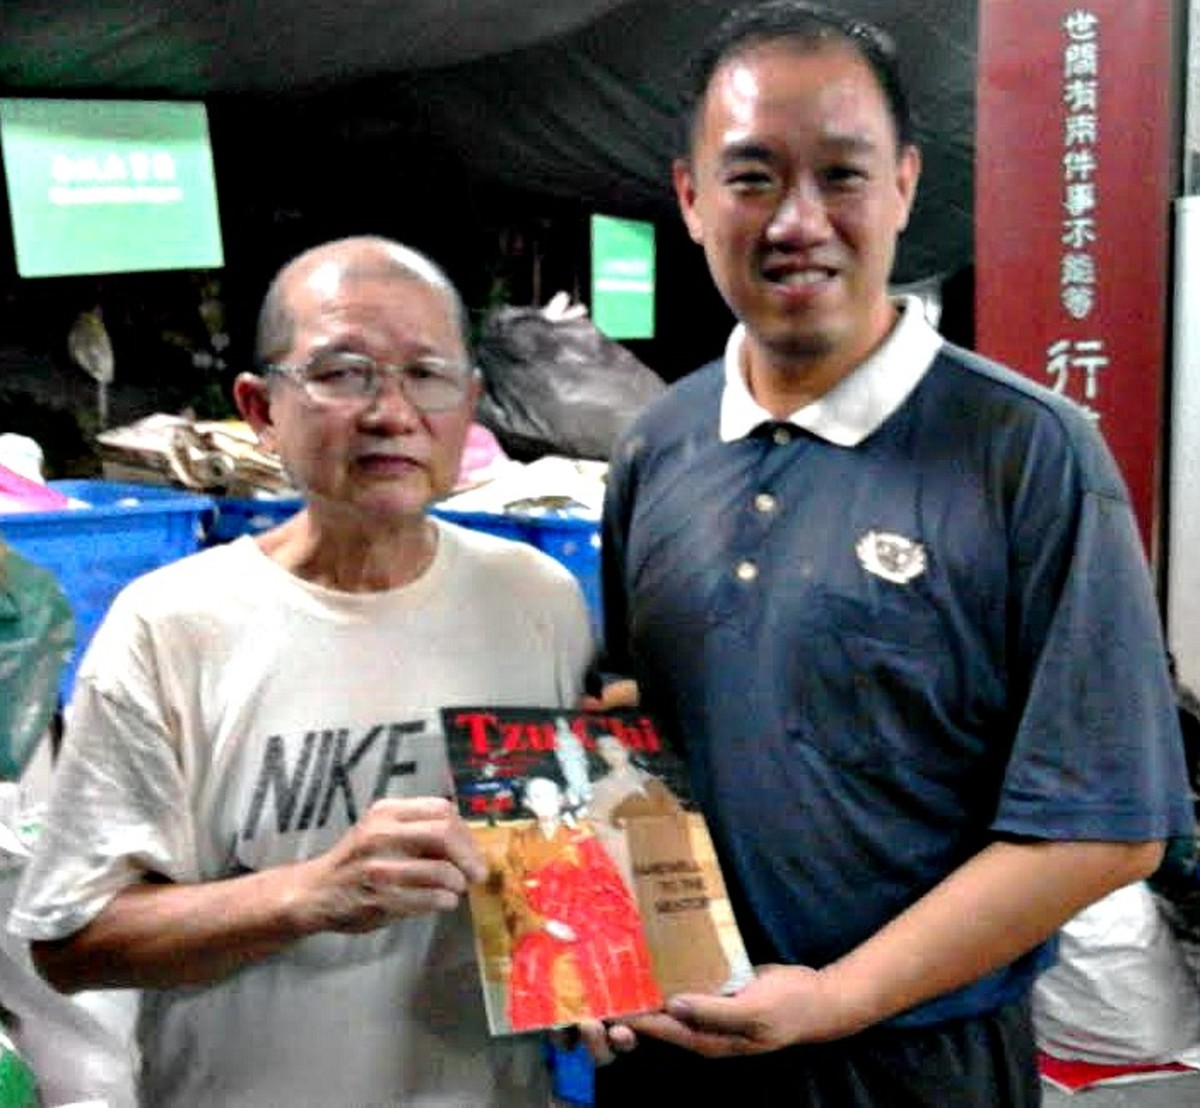 Tzu Chi Brother Edwin Khoo and Good Guy with the magazine he gave me. Photo taken on Nov 14, 2016